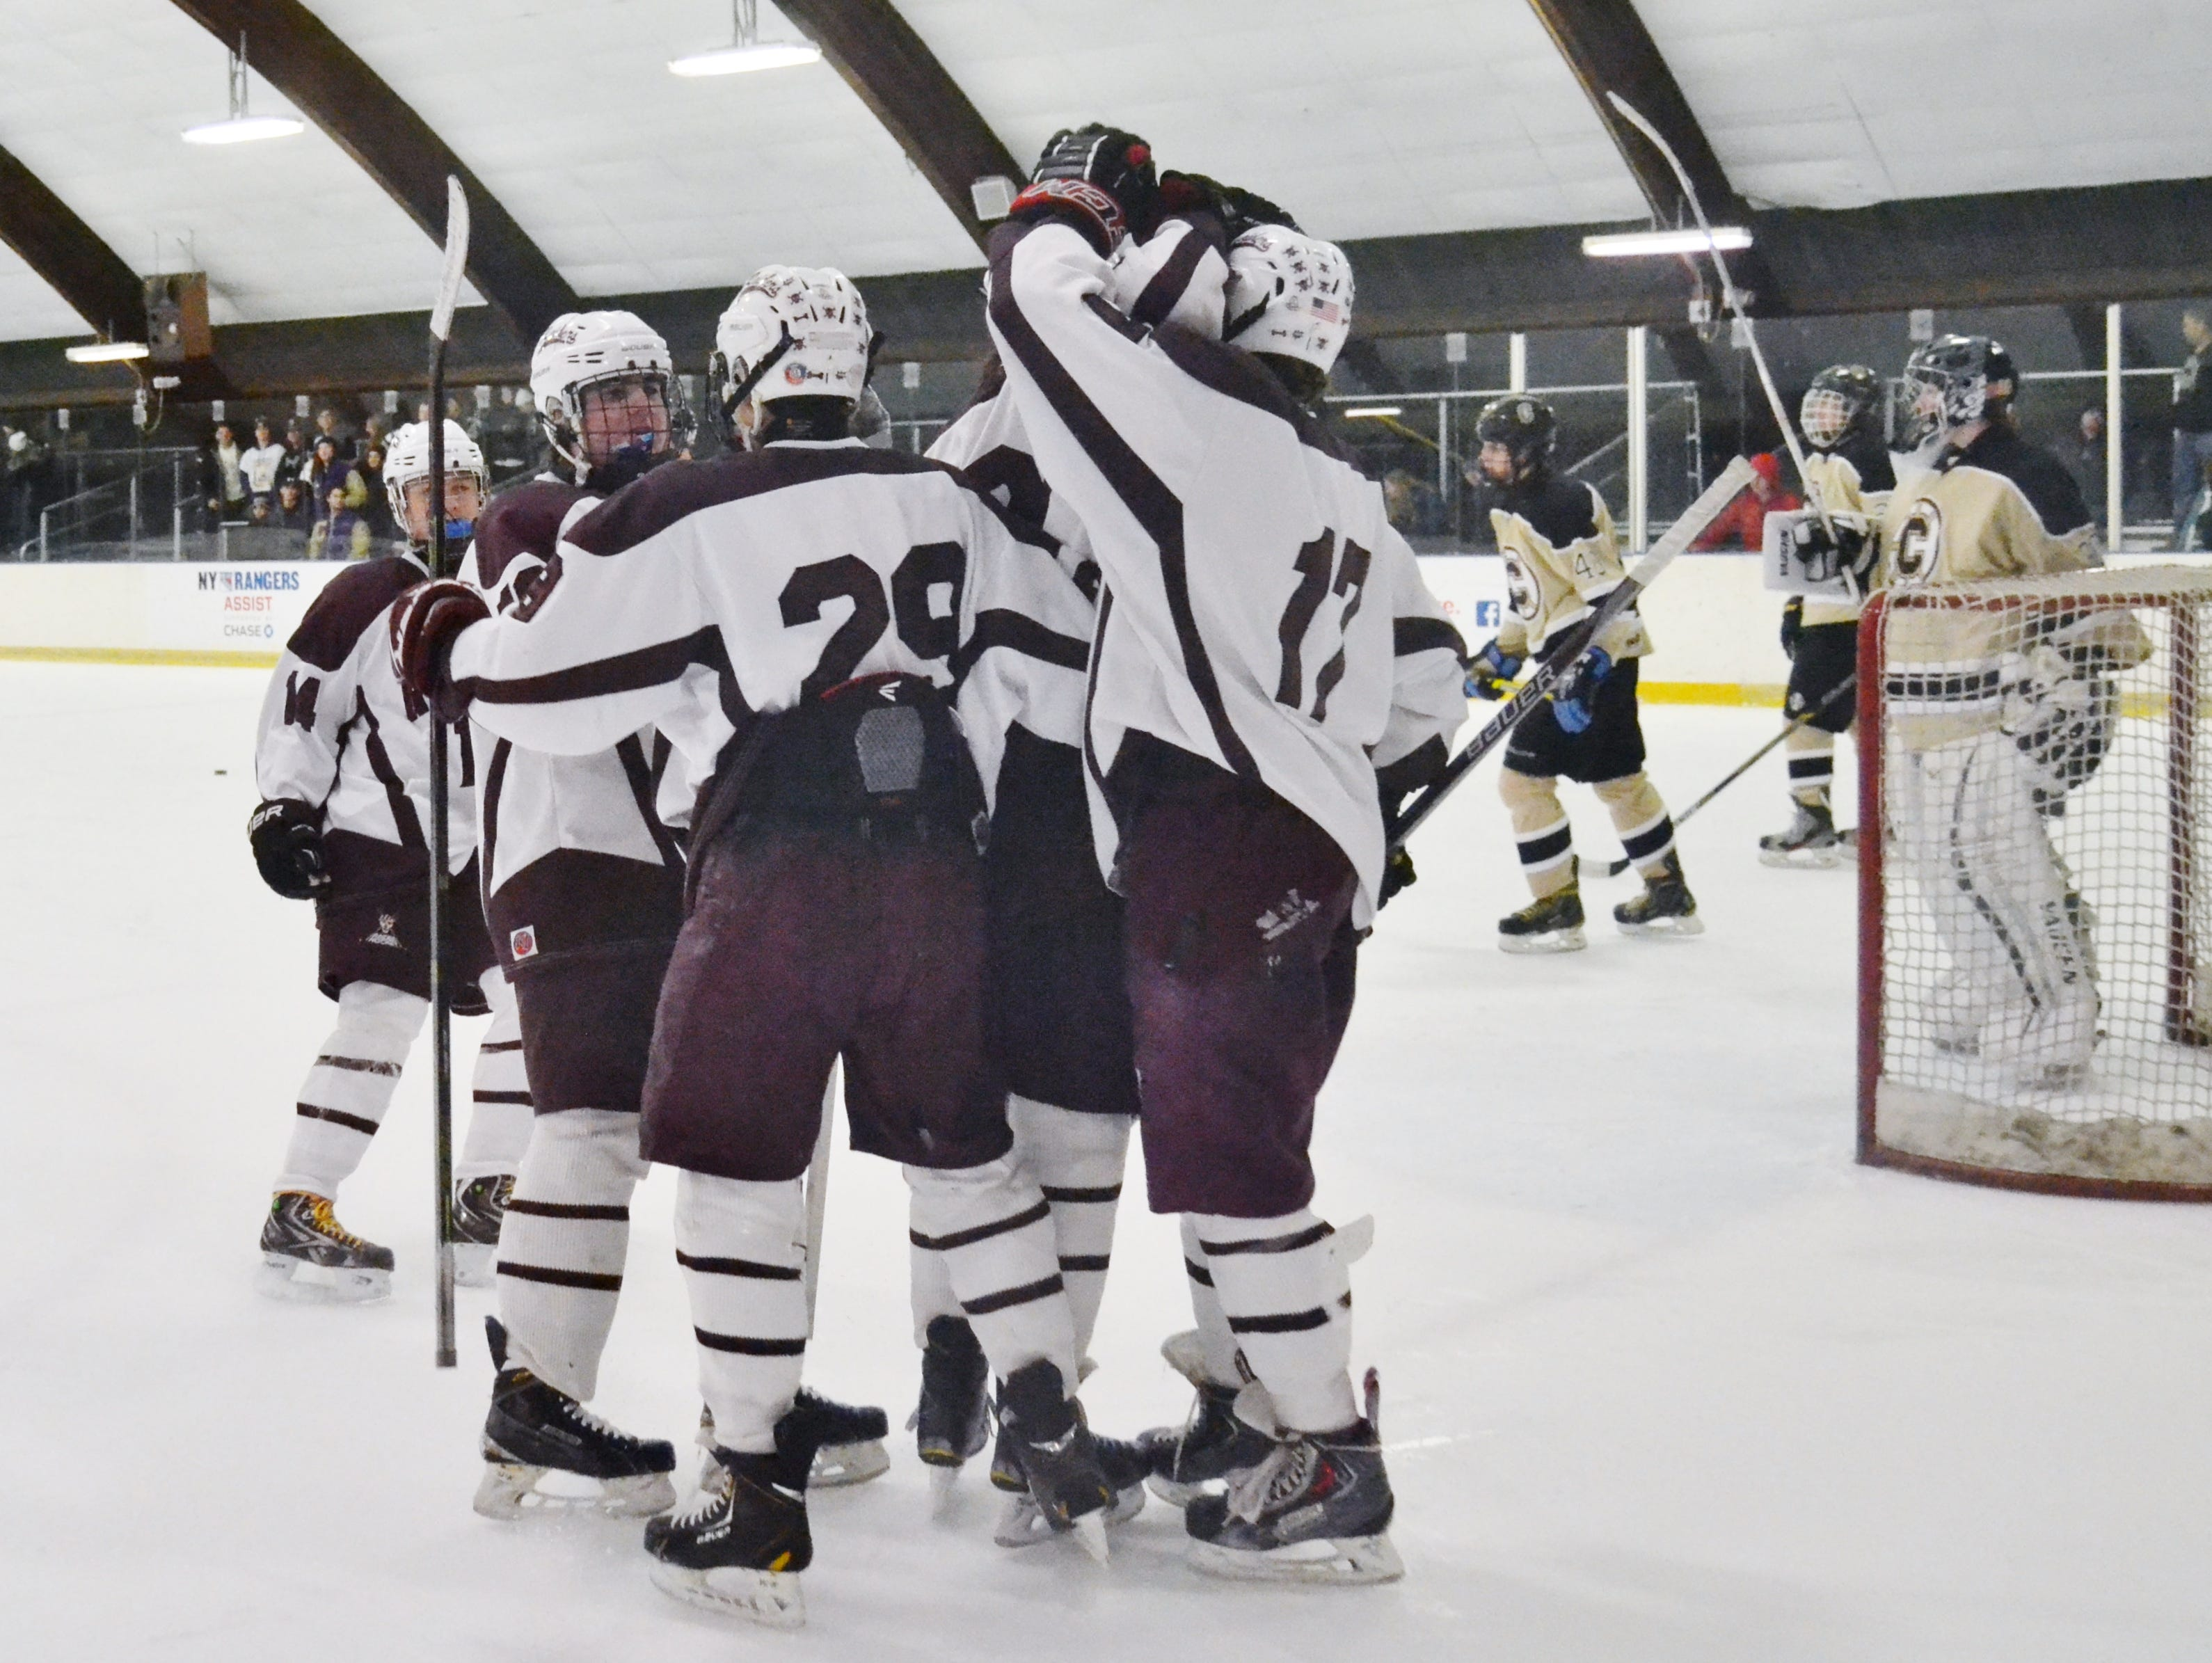 Scarsdale forward Jonathan Schwartz (29) is congratulated after scoring to give the Raiders a 2-0 lead in Sunday's win over Clarkstown.